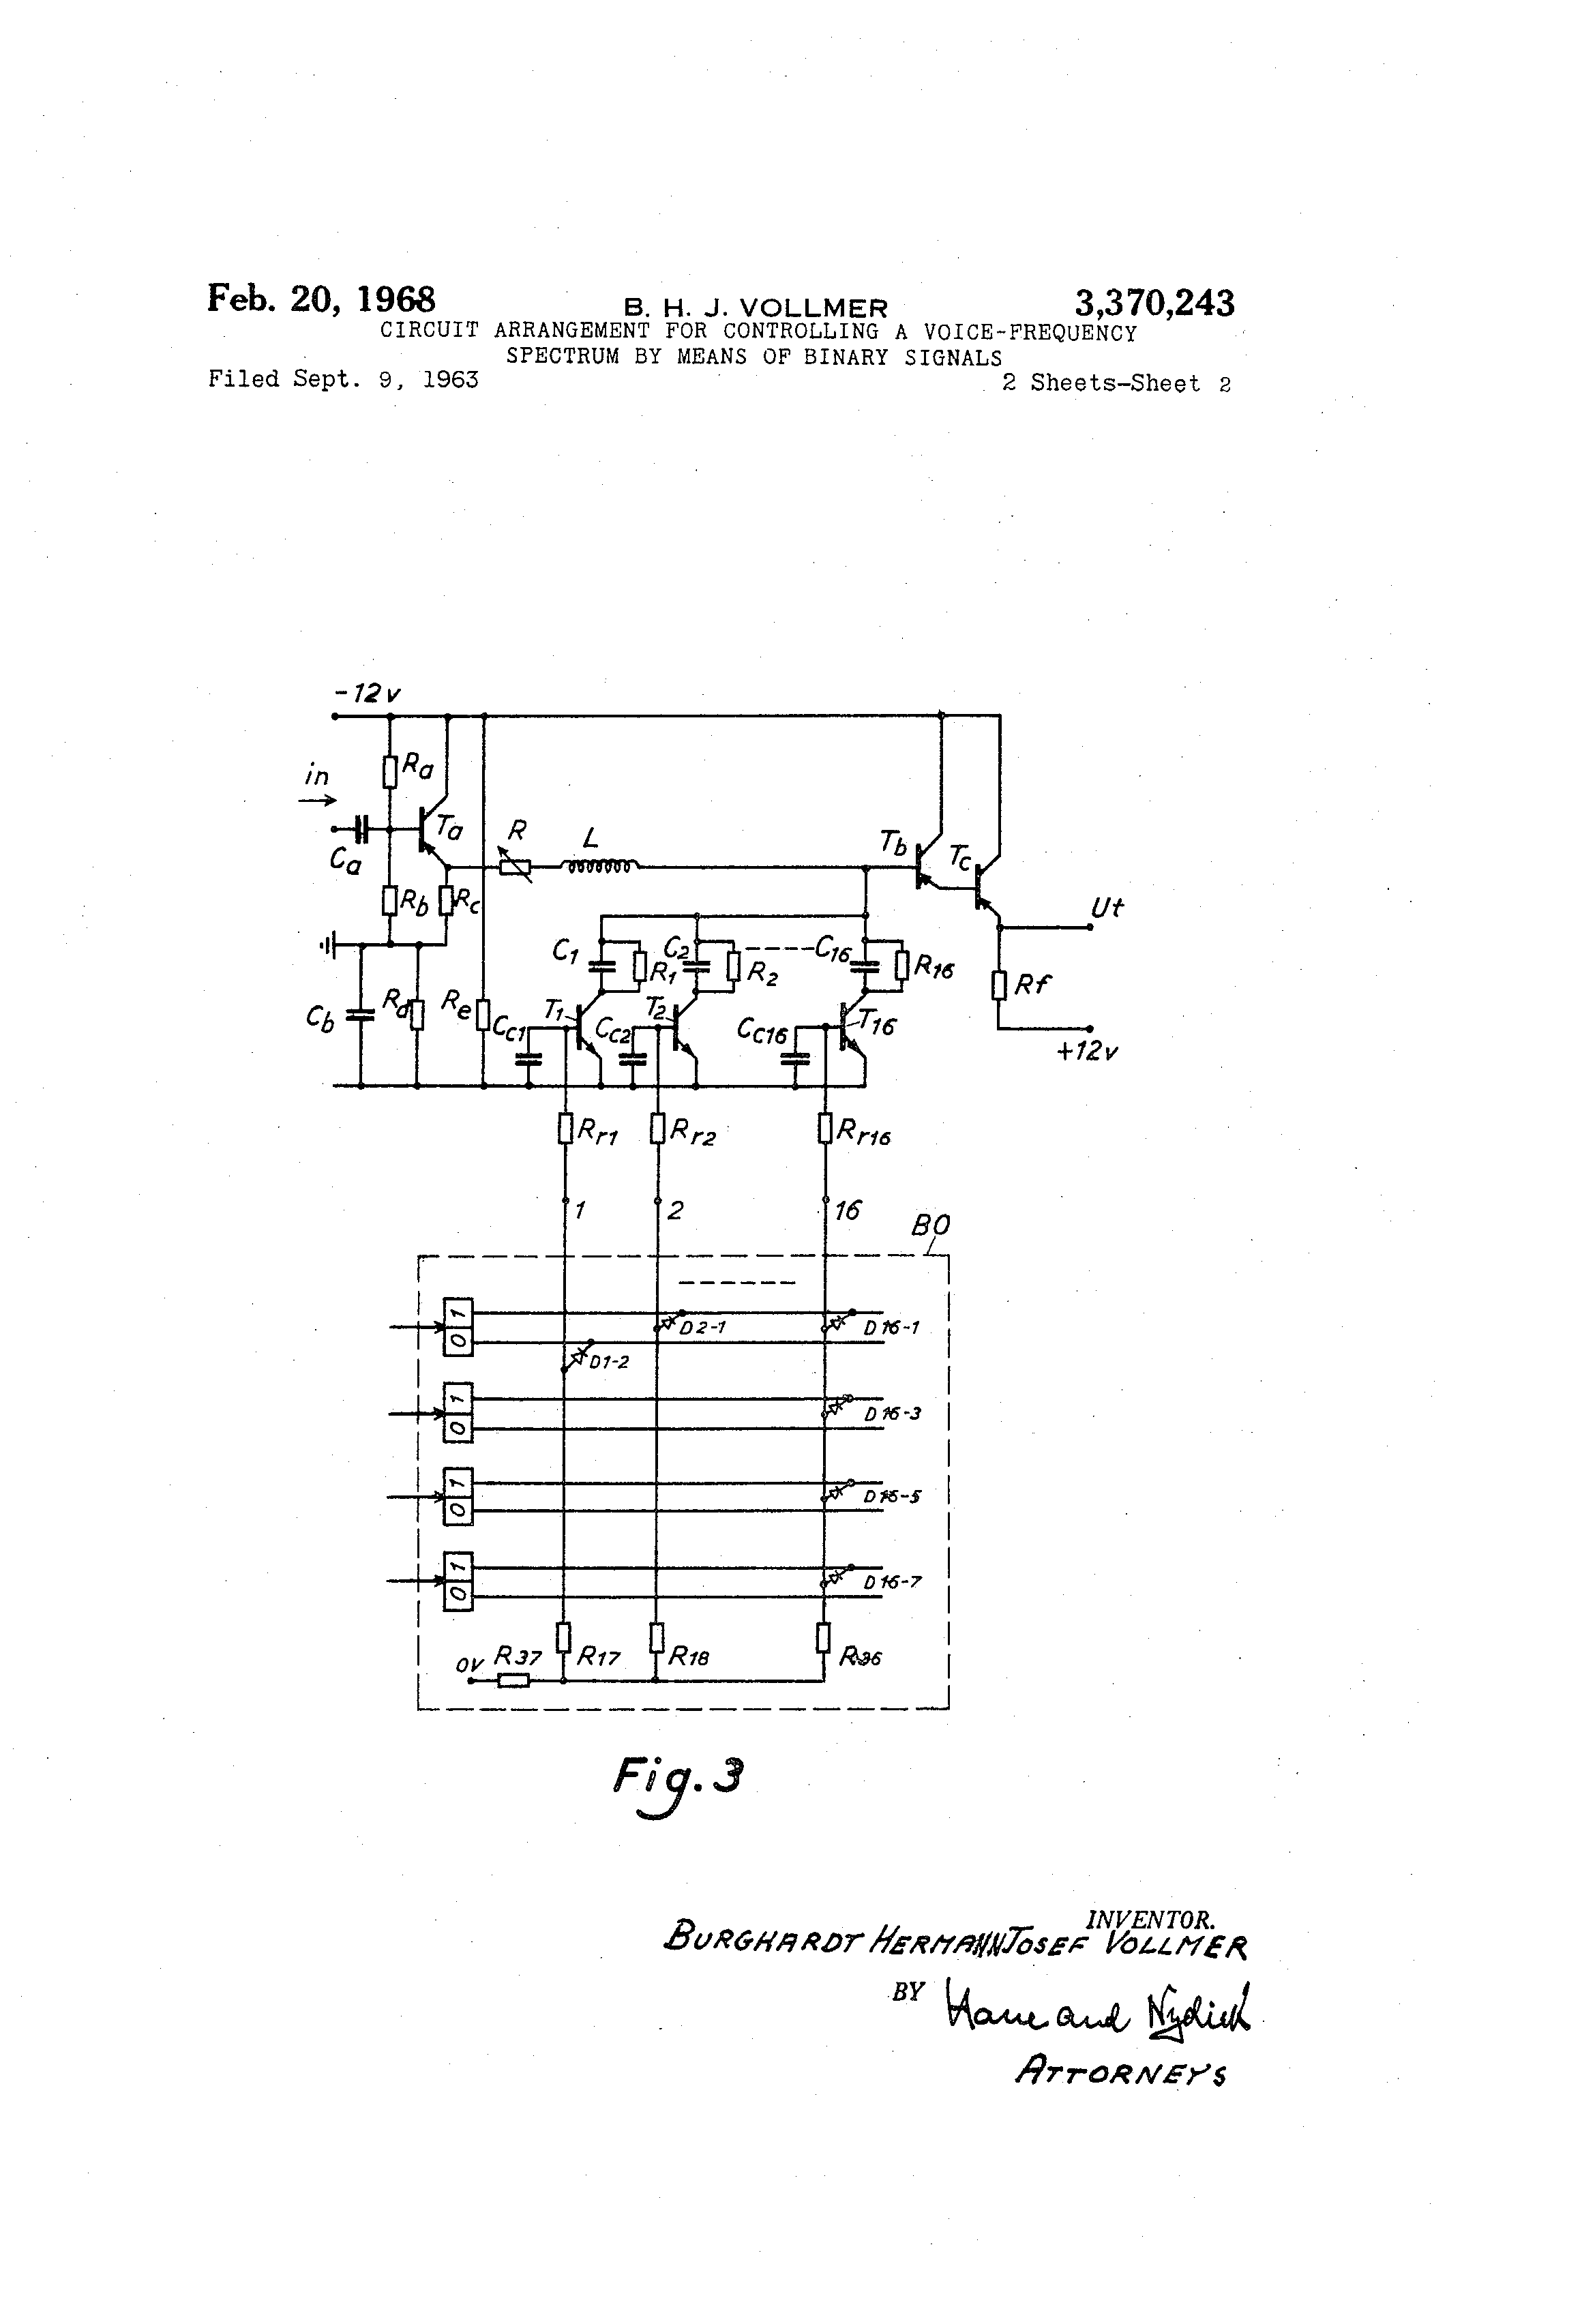 US 3370243 A - Circuit Arrangement For Controlling A Voice-frequency ...